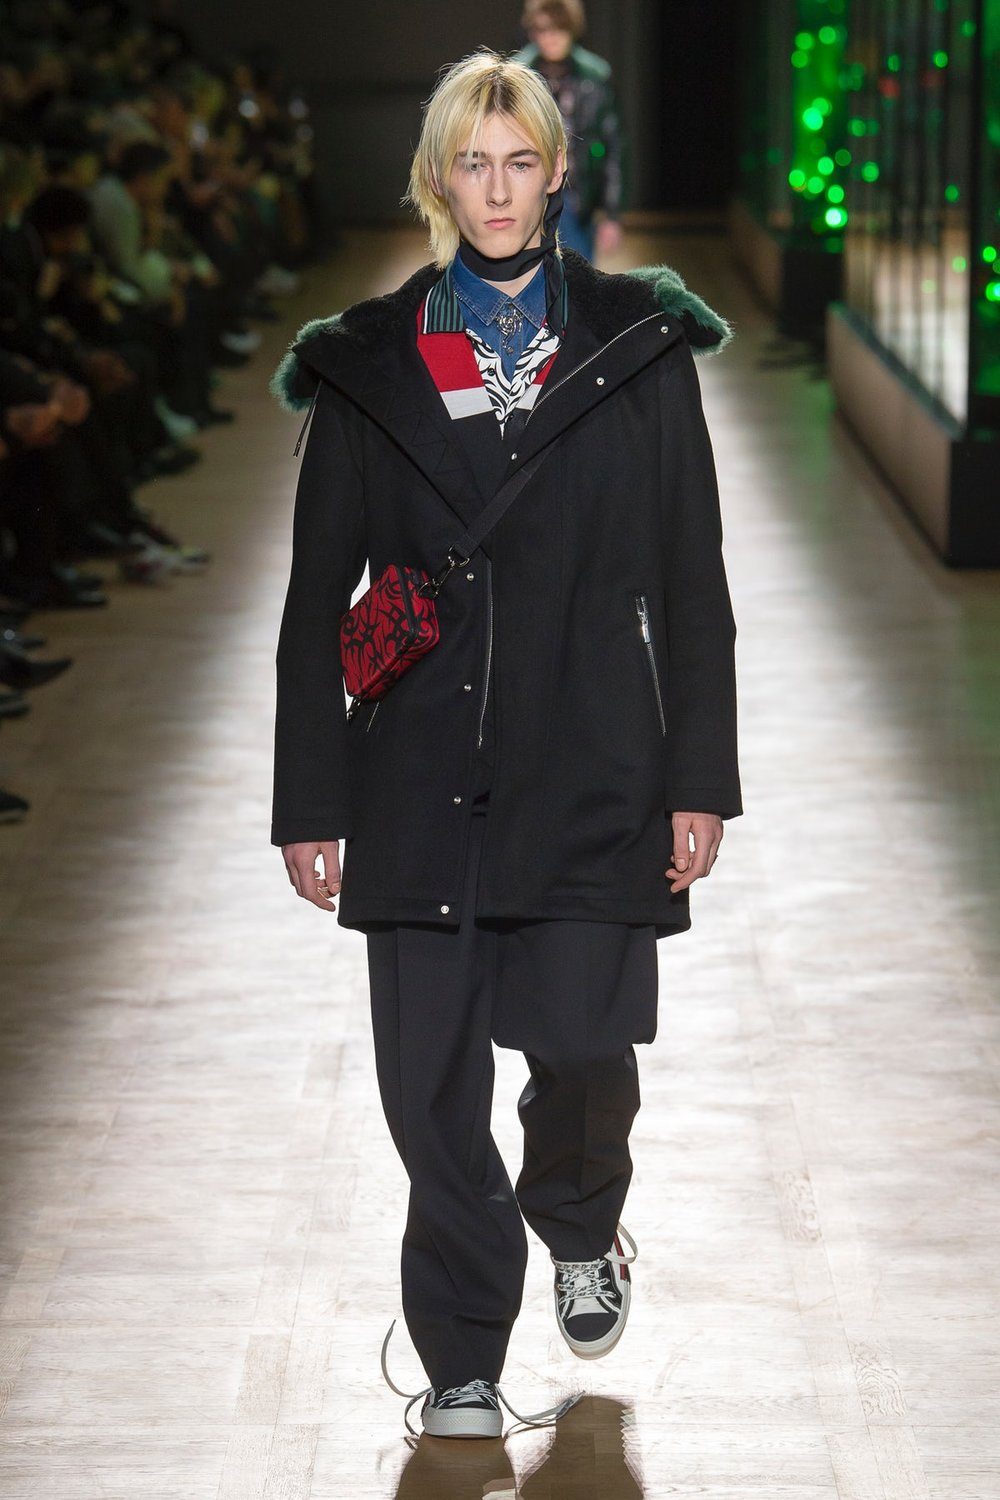 dior_homme_look_21_menswear_autumn_2018.jpeg